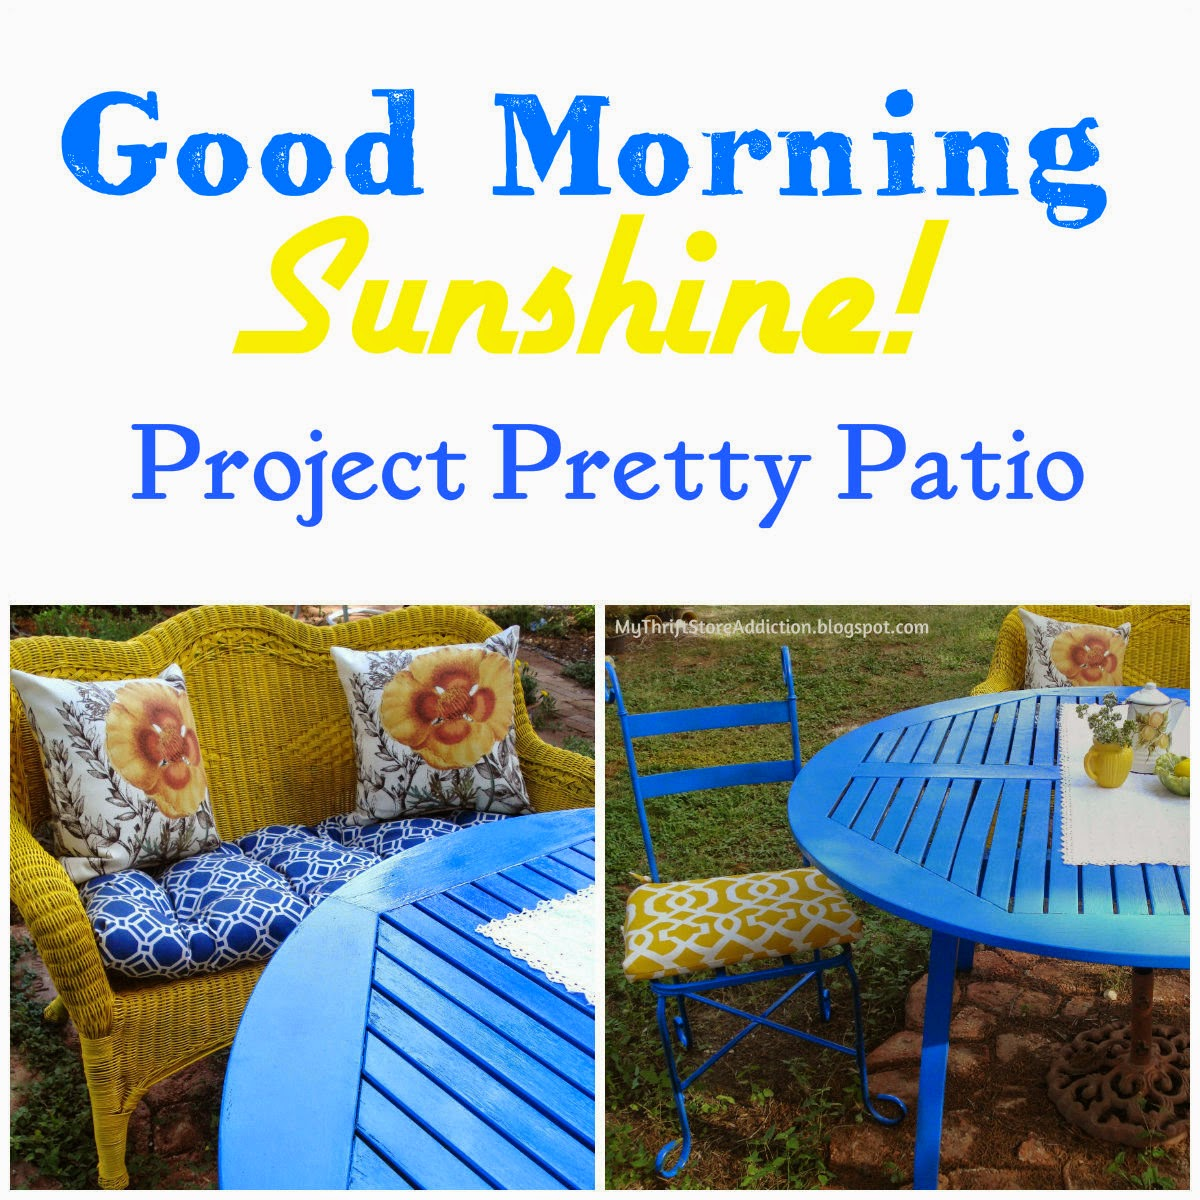 Good Morning Sunshine: Project Pretty Patio mythriftstoreaddiction.blogspot.com With a little paint, you can create a pretty patio with mismatched yard sale furniture!